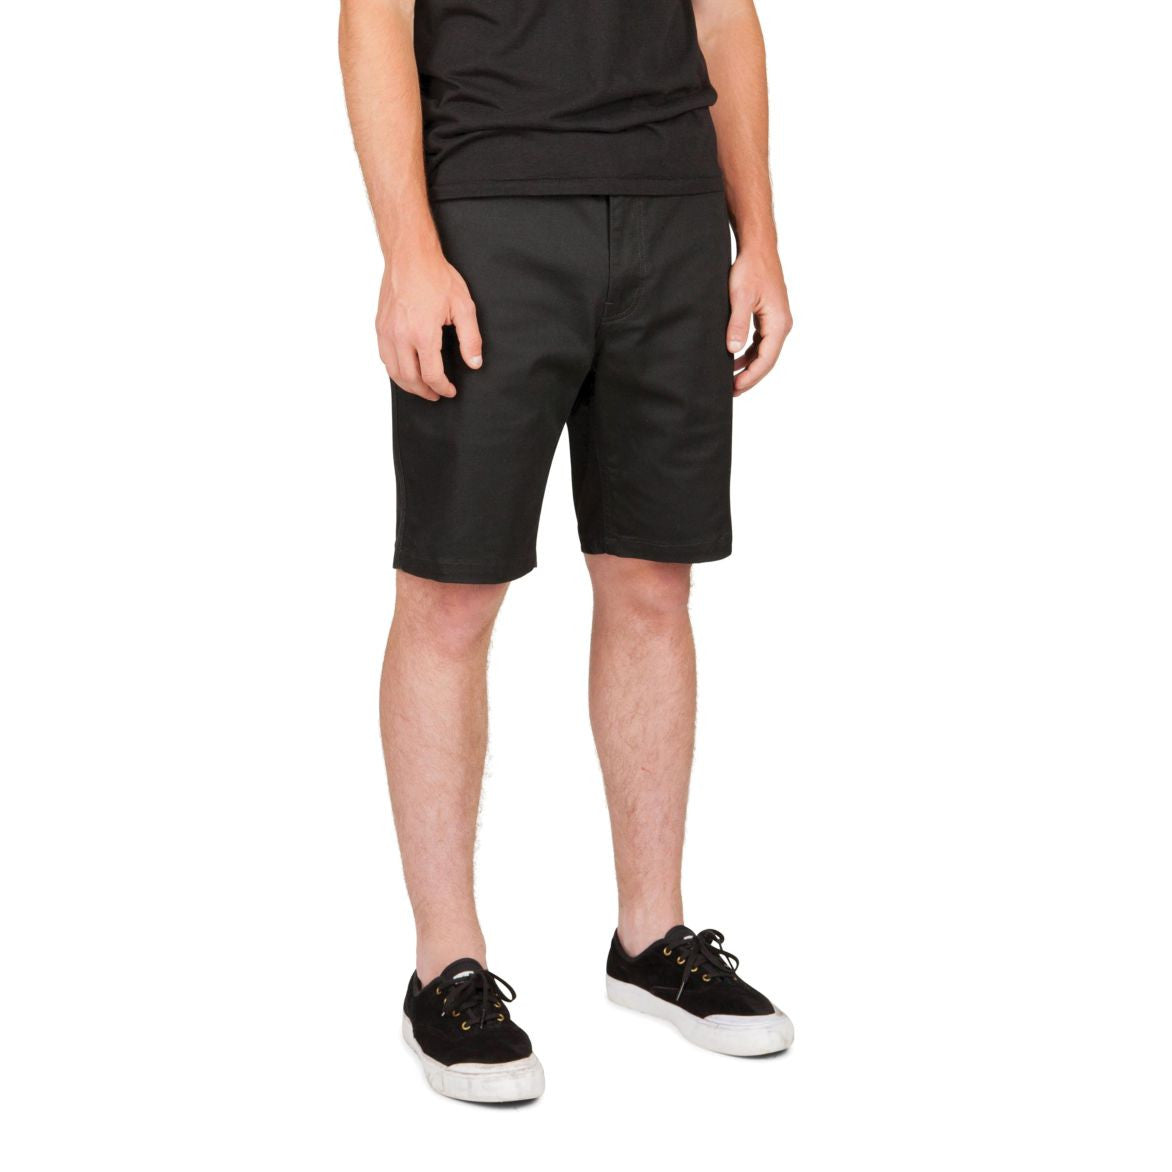 Brixton - Murphy Men's Chino Shorts, Black - The Giant Peach